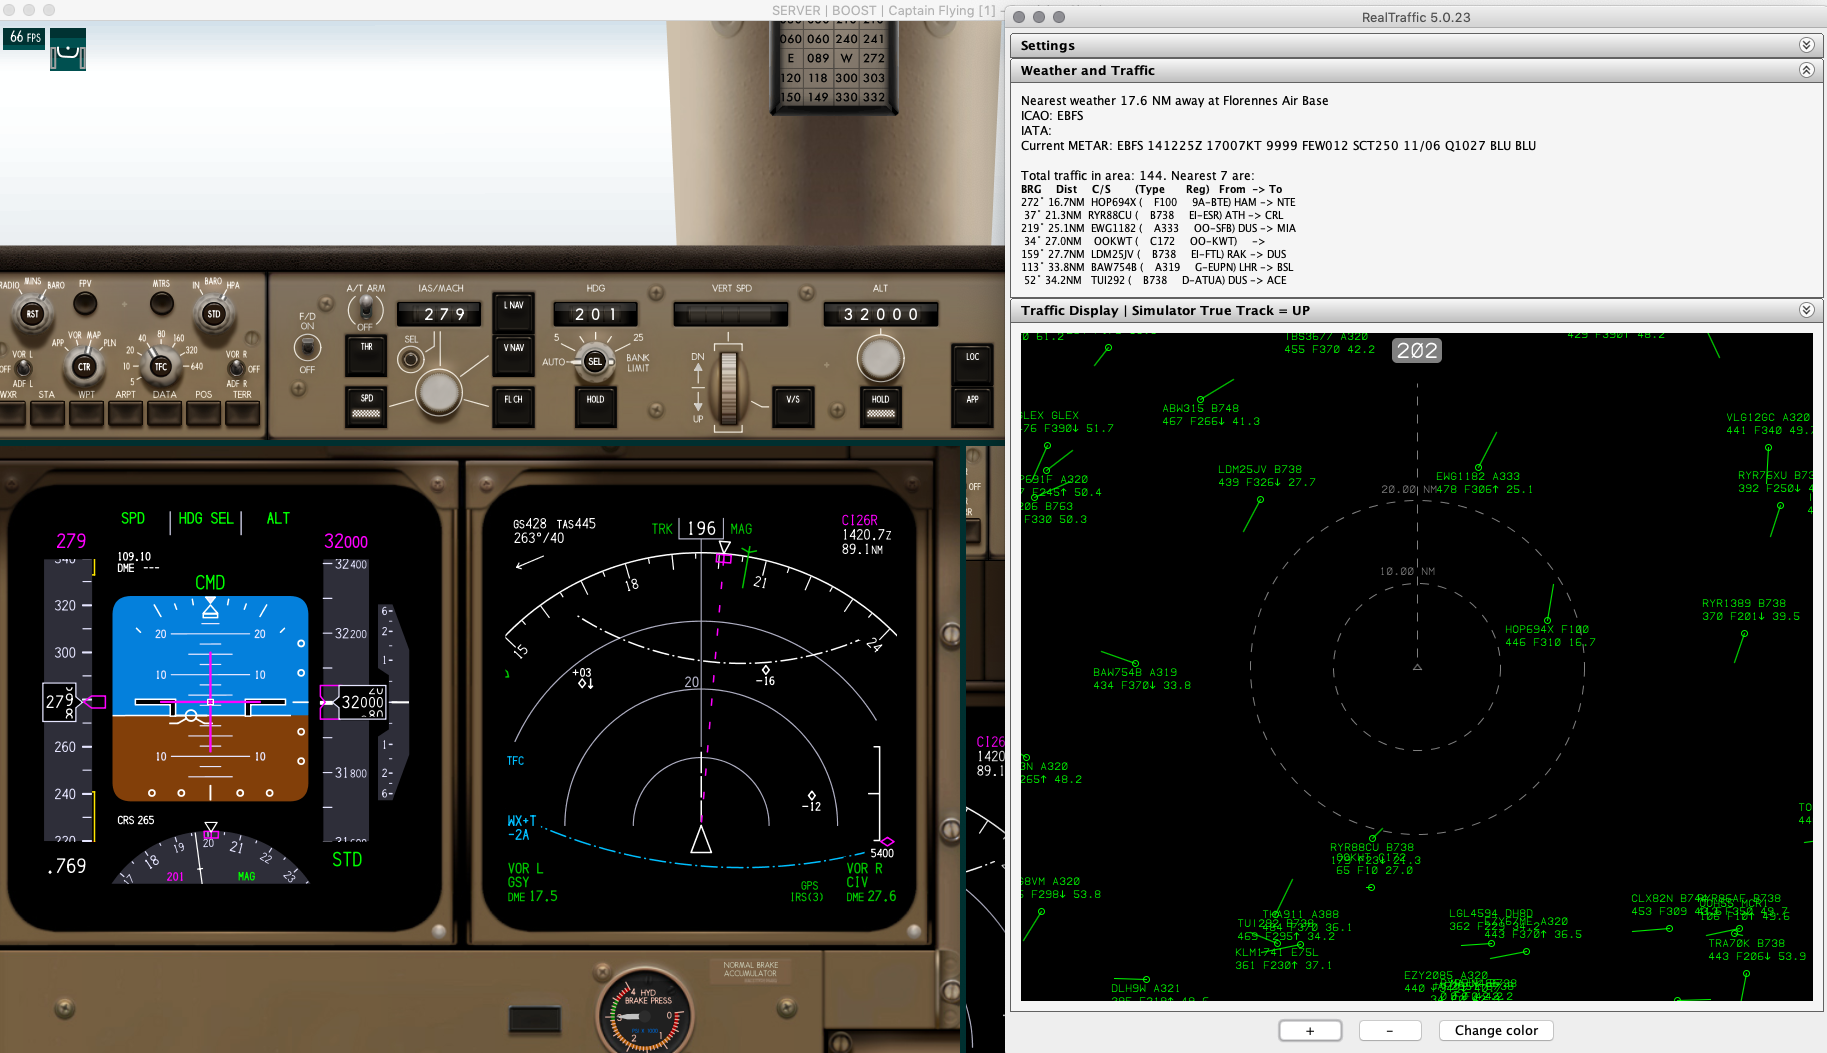 Descending into Paris. The real world traffic is visible both in the TCAS as well as the RealTraffic radar display.